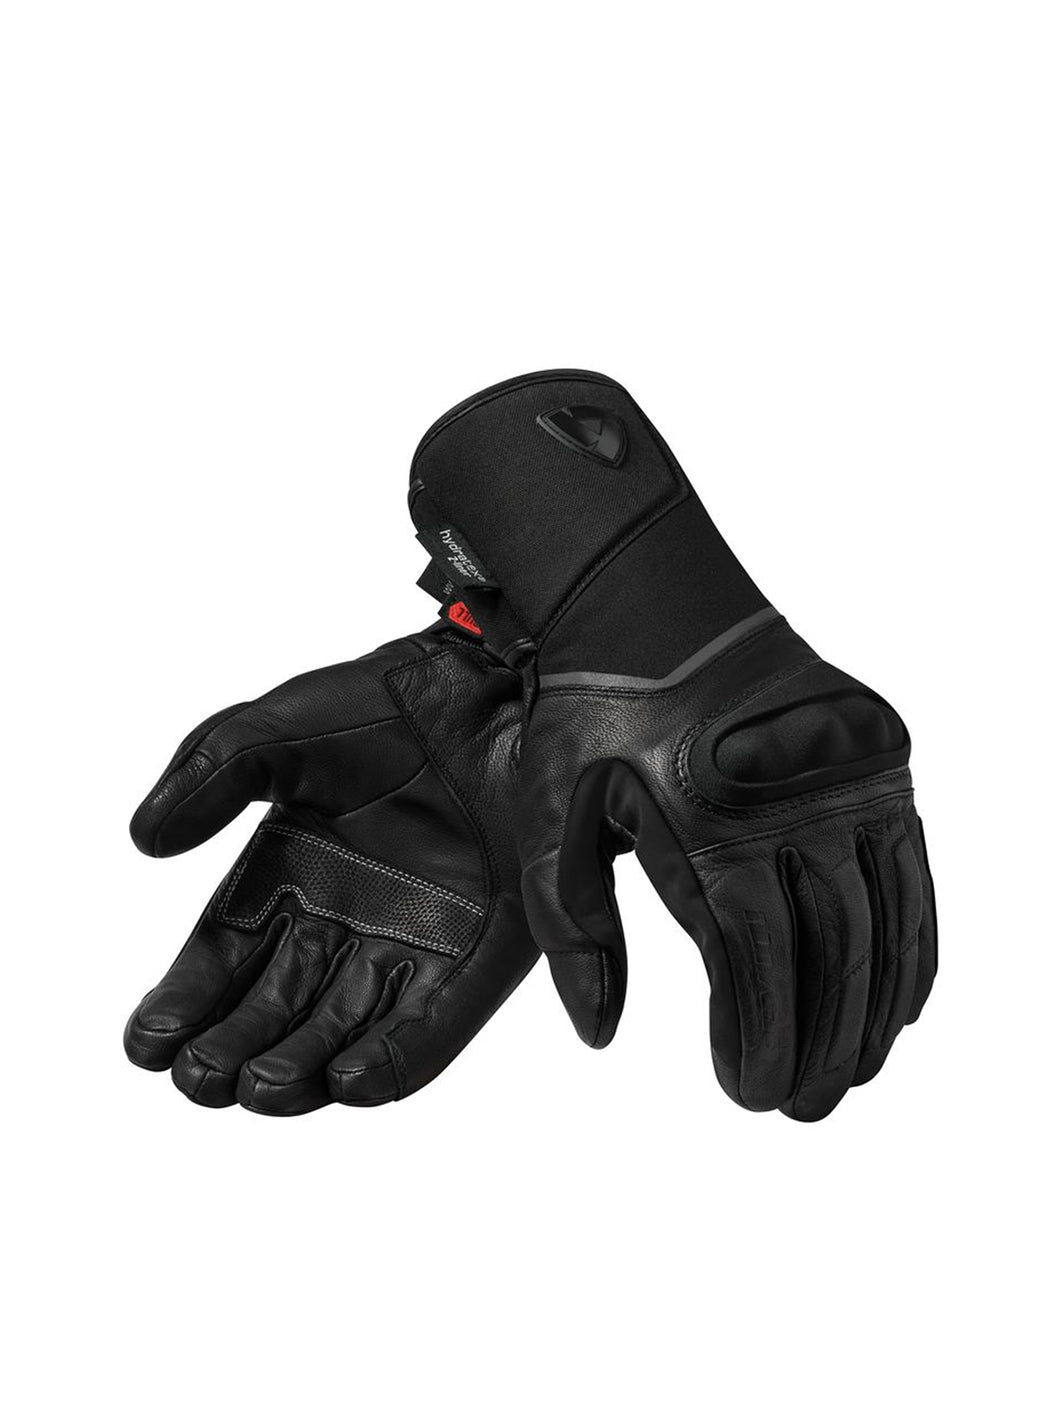 REVIT Summit 3 H2O Gloves